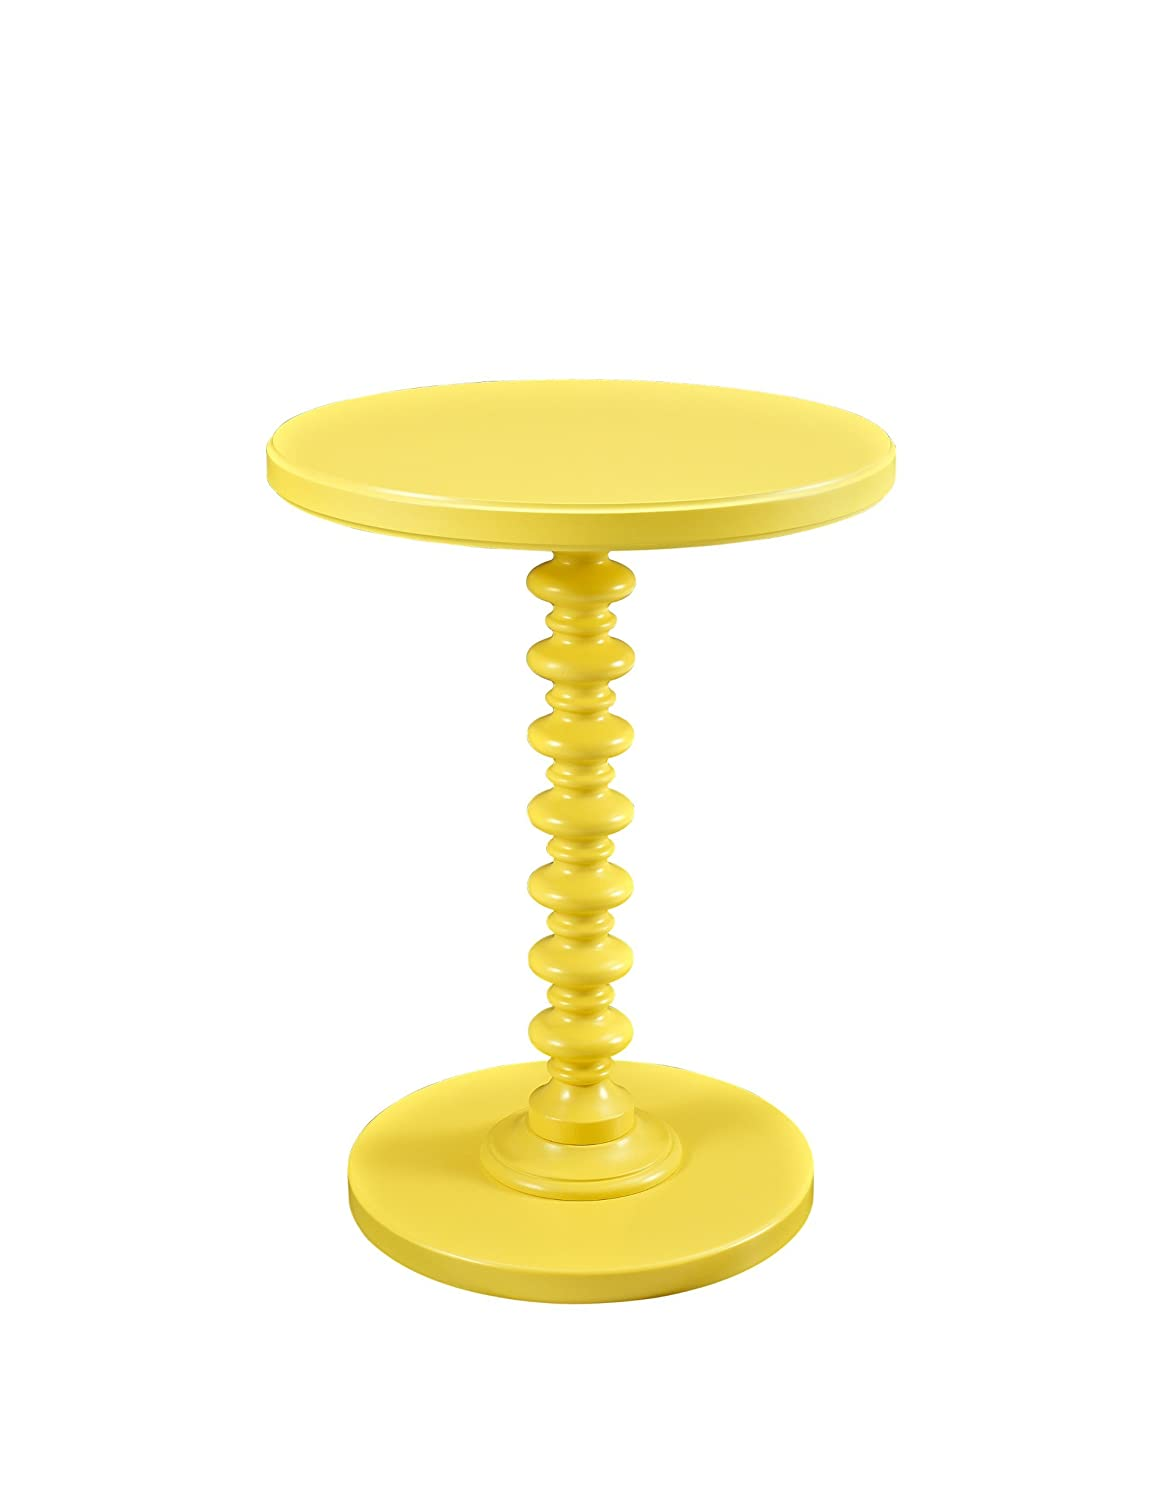 Powell Furniture 142-269 Powell Bubblegum Round Spindle Table Multicolor